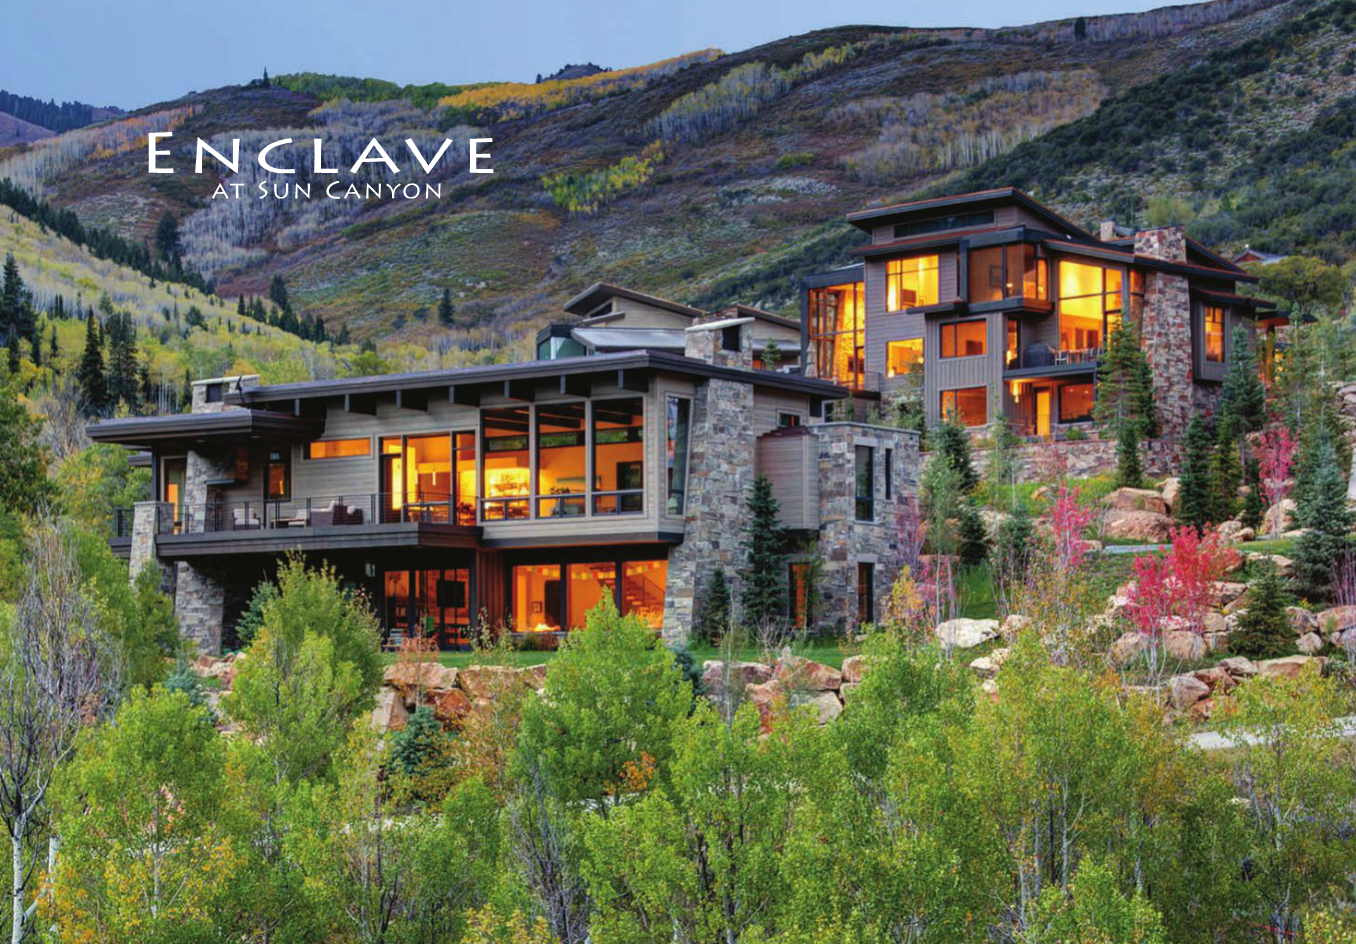 Enclave at Sun Canyon Homes for Sale Park City Utah